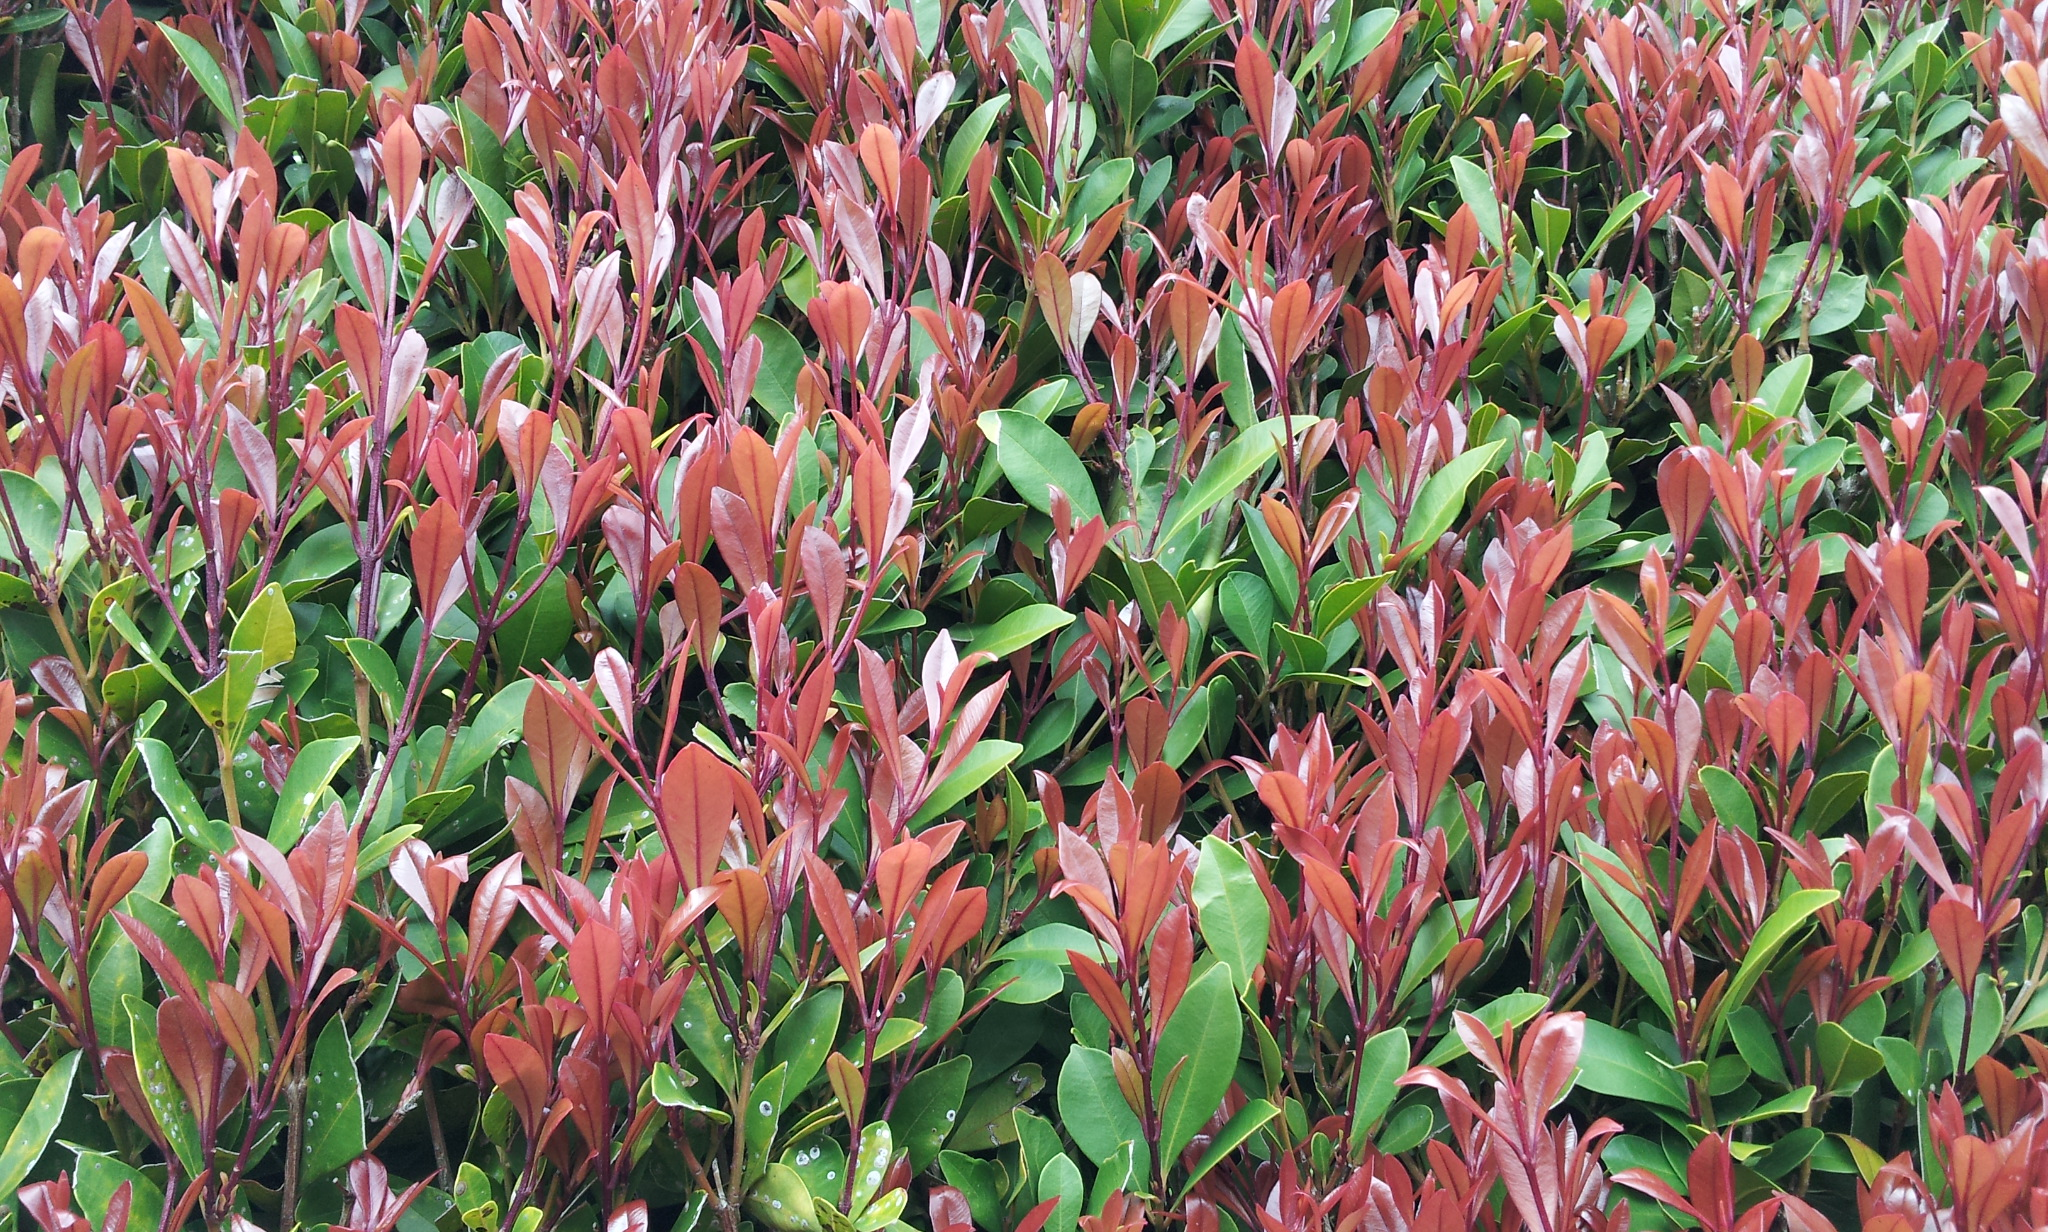 Syzygium australe Lilly Pilly standards